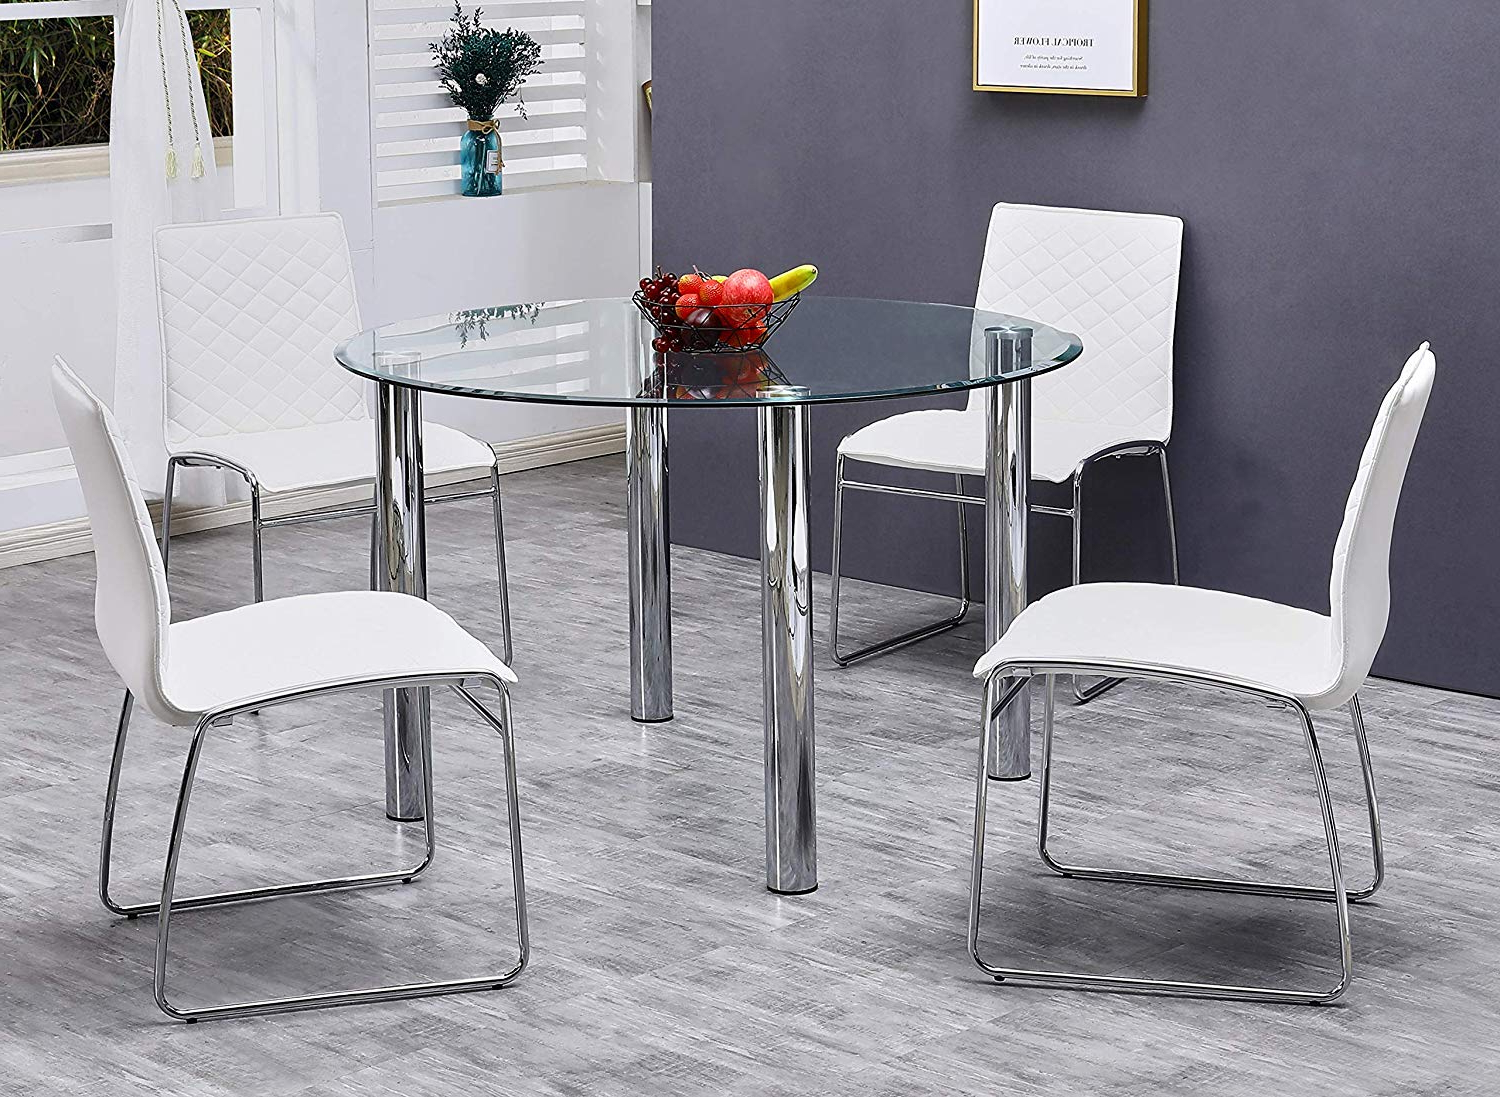 Well Known 4 Seater Round Wooden Dining Tables With Chrome Legs In Amazon – Best Master Furniture Tarina 5 Pcs Round Glass (View 4 of 30)